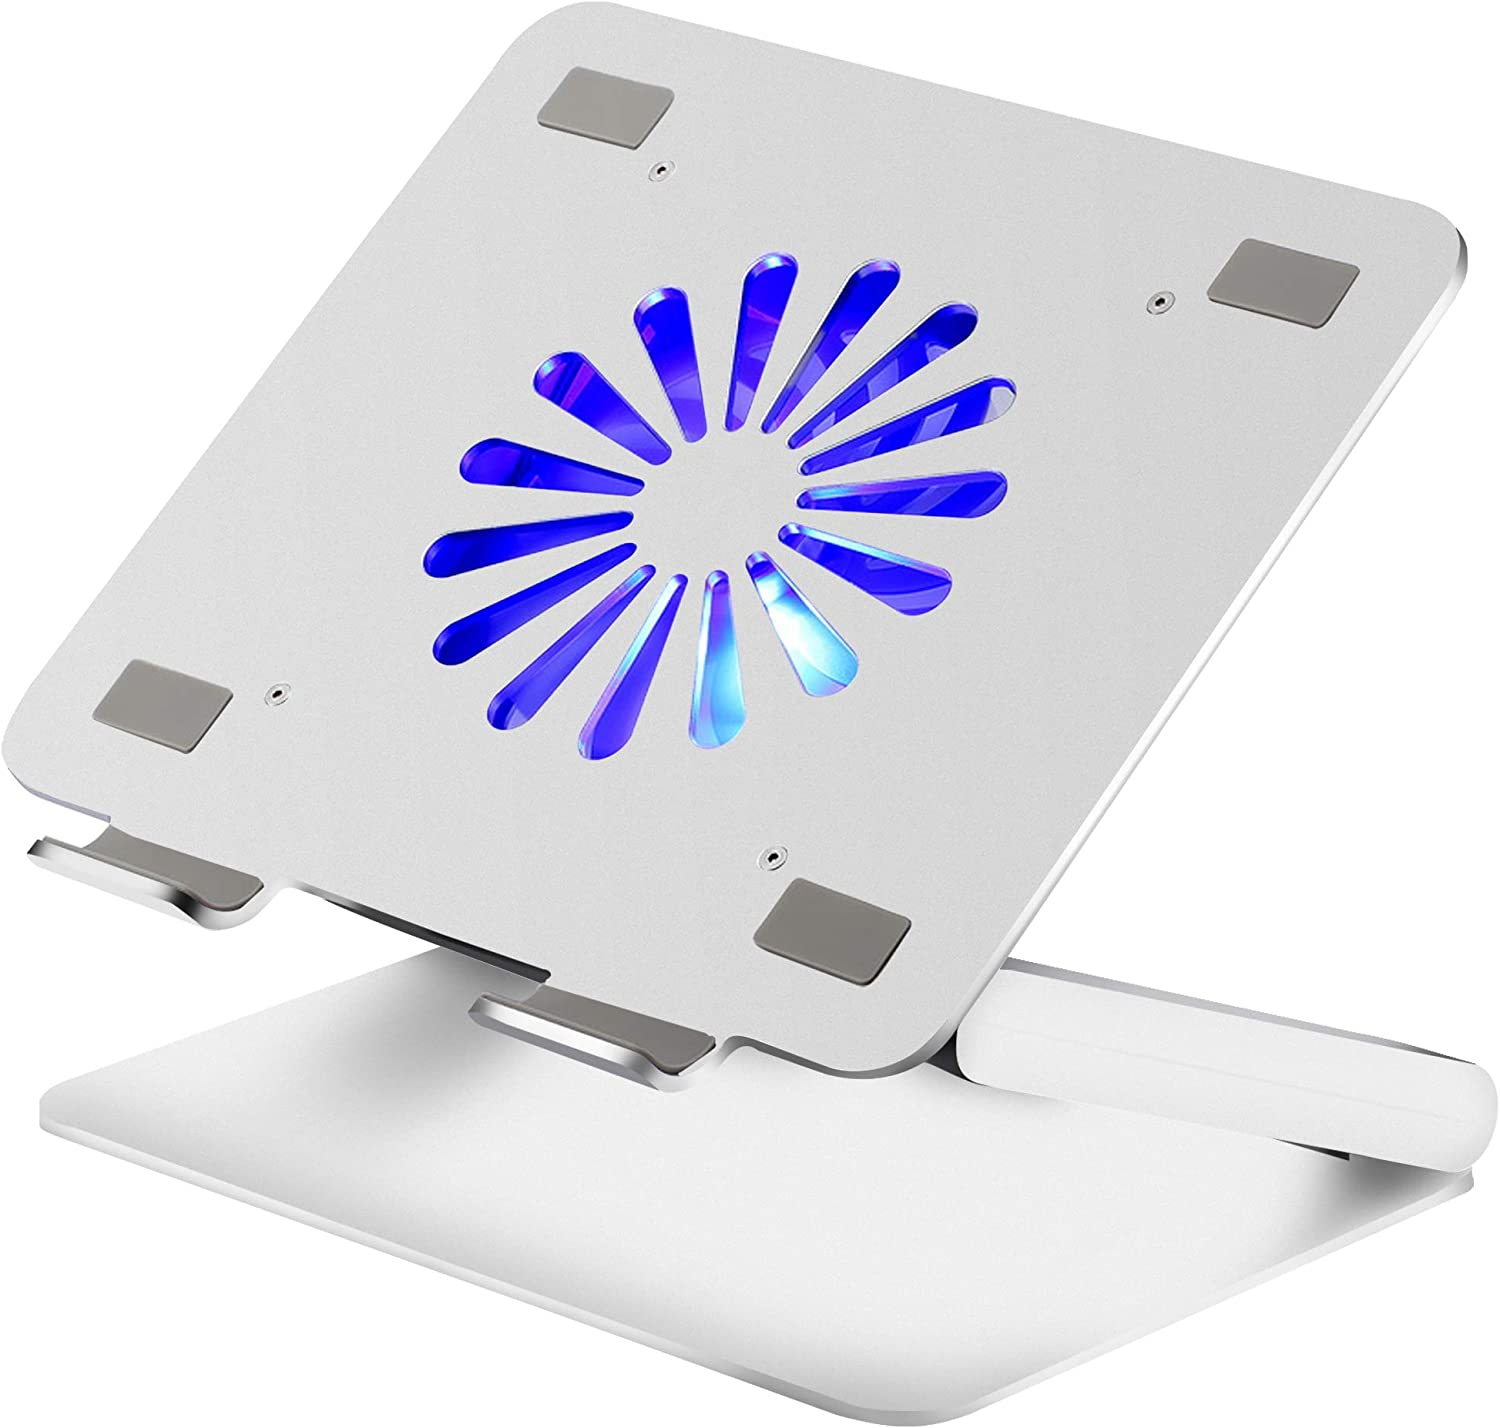 Soundance Laptop Stand for Desk Compatible with Apple Mac MacBook Pro Air 10 - 17.3 Inches Notebook, Multi Angle Adjustable Ergonomic Aluminum Riser Metal Holder with Cooling Fan USB Hub, N16